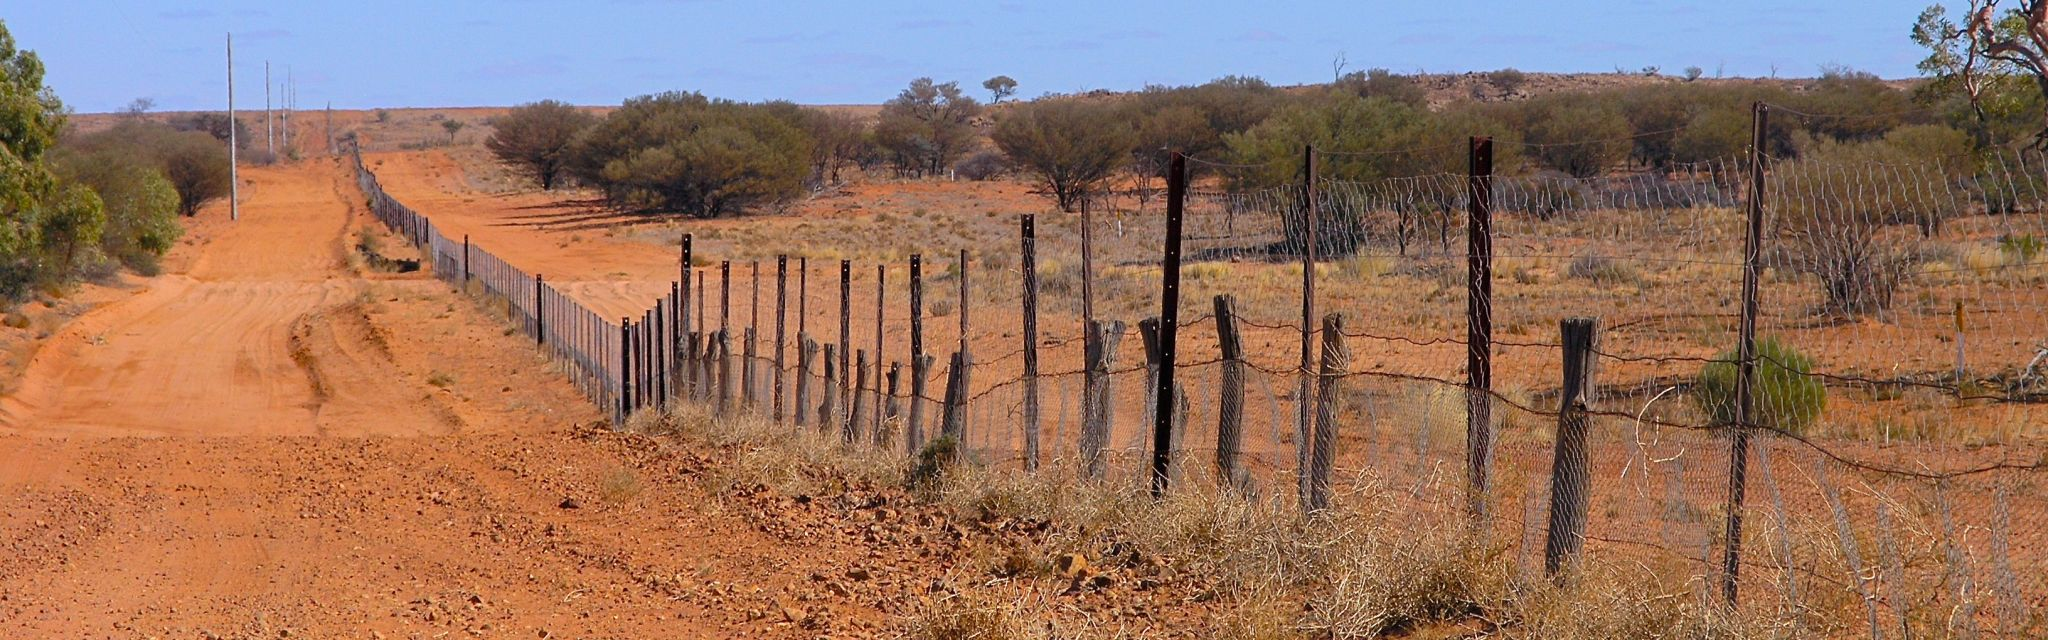 Wild dog barrier fence near the Corner Country.